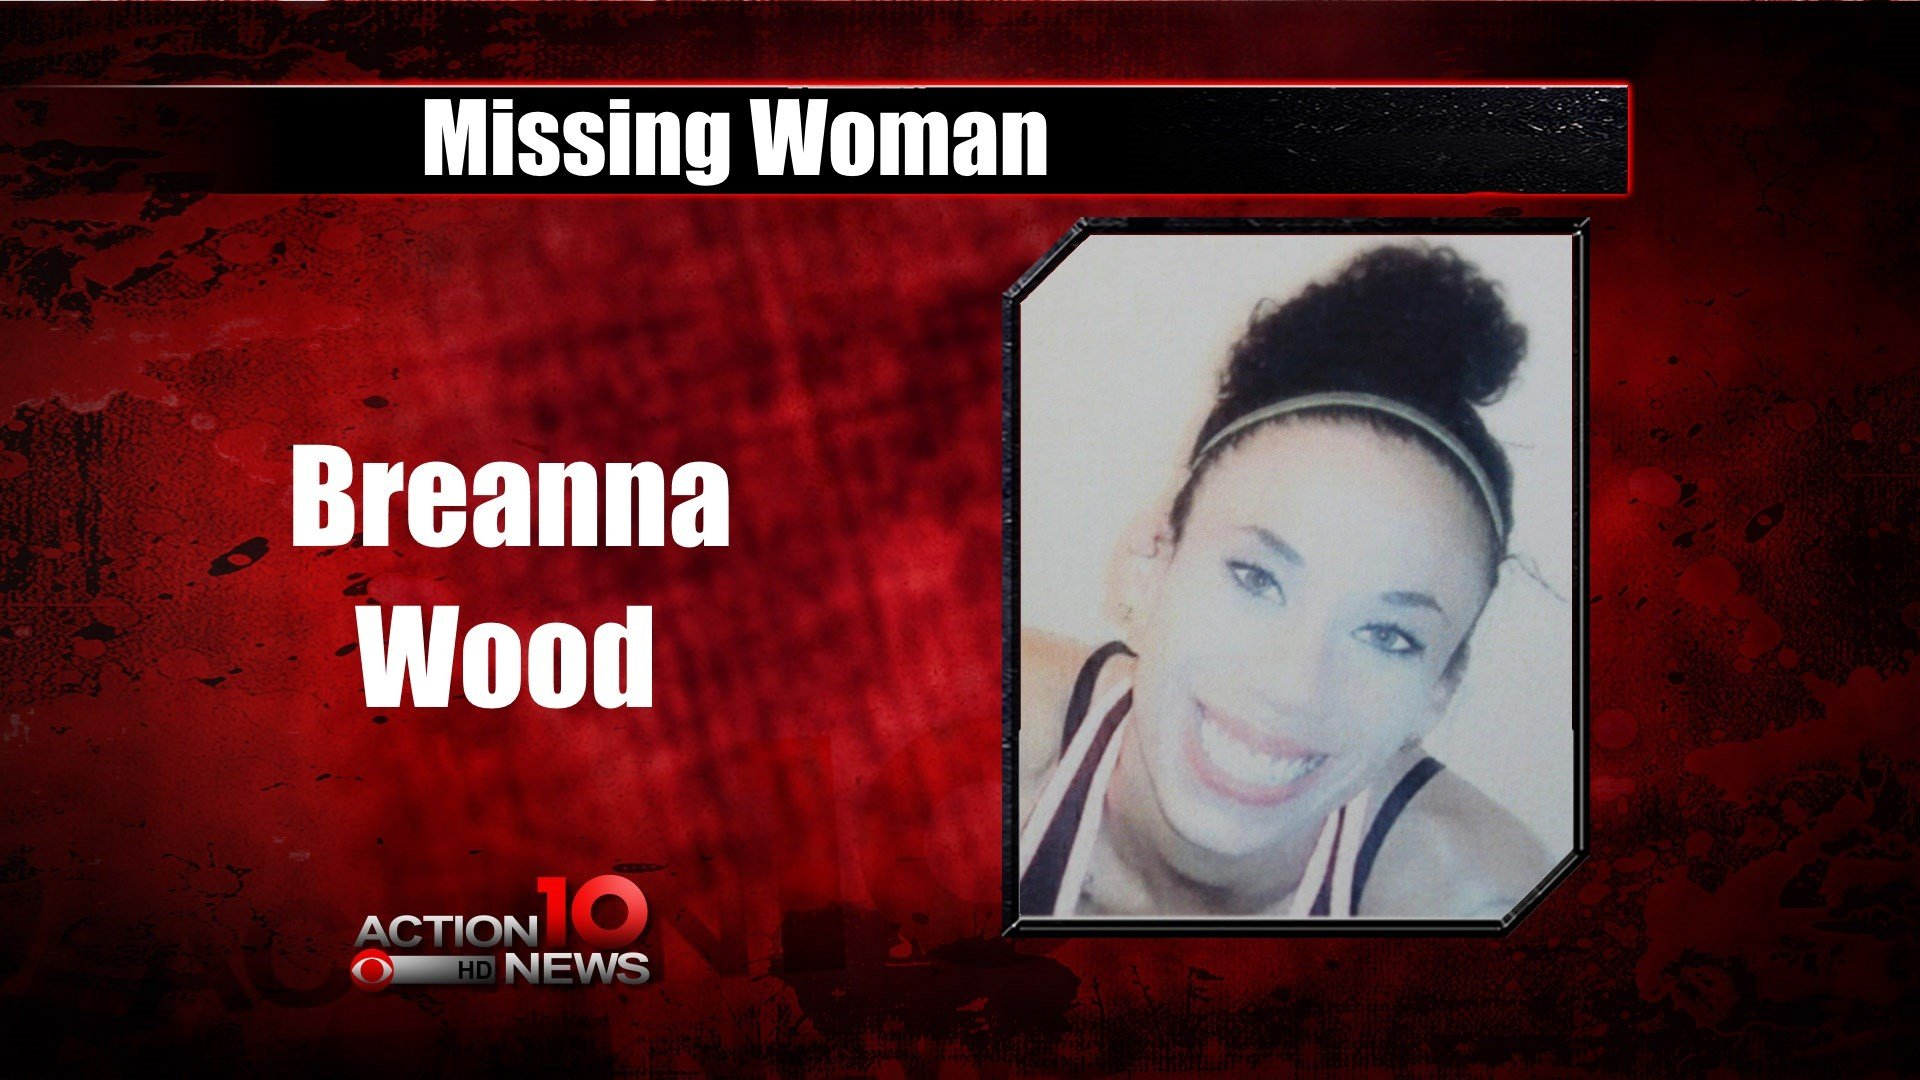 If you have any information on the whereabouts of 21-year-old Breanna Wood, contact police at 886-2600.